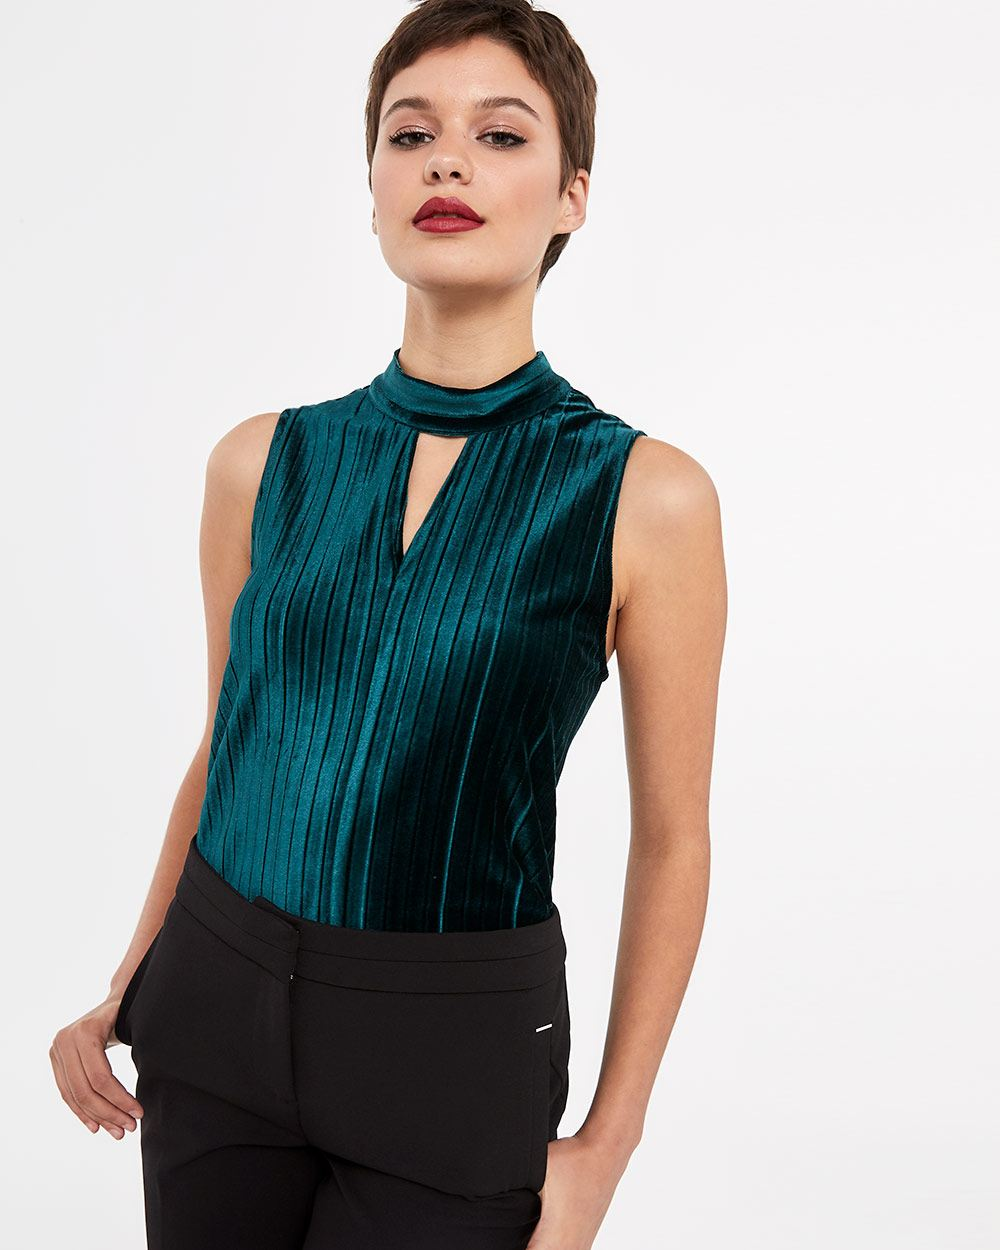 Sleeveless Velvet Top